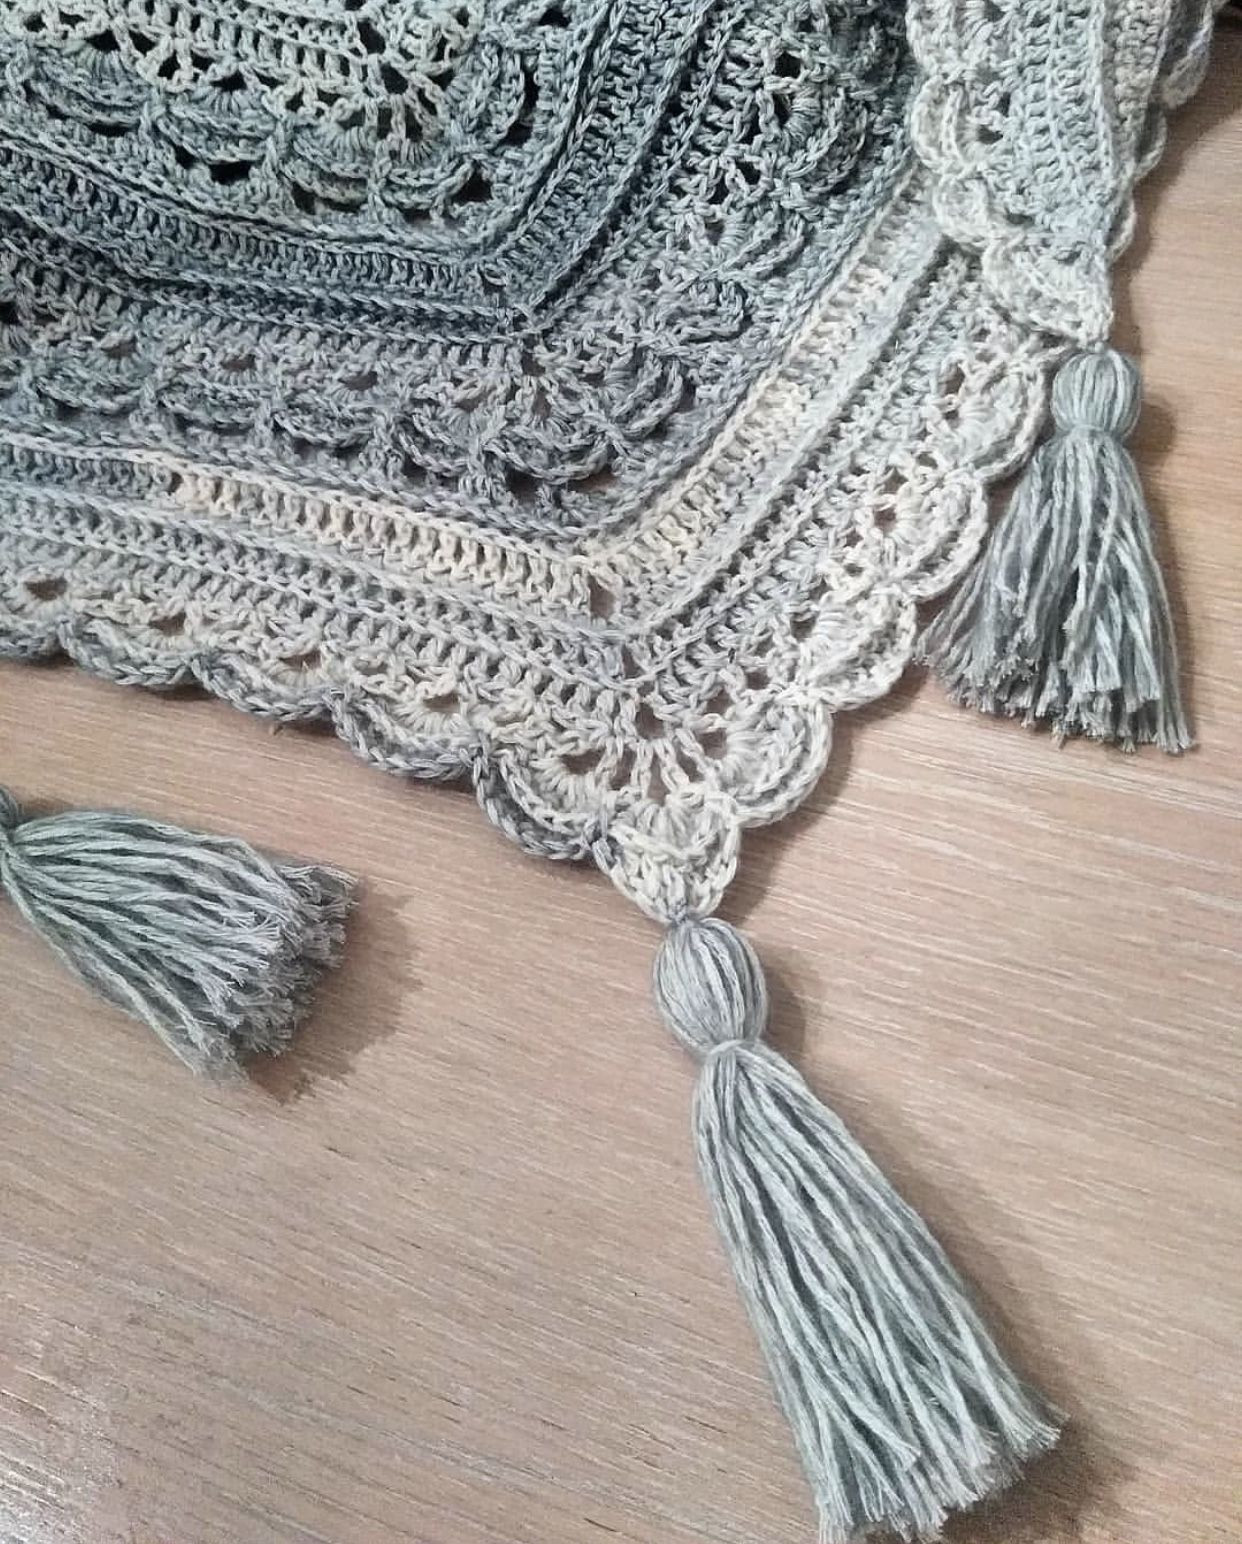 Ana Lucia Shawl - free crochet shawl pattern by Wilmade